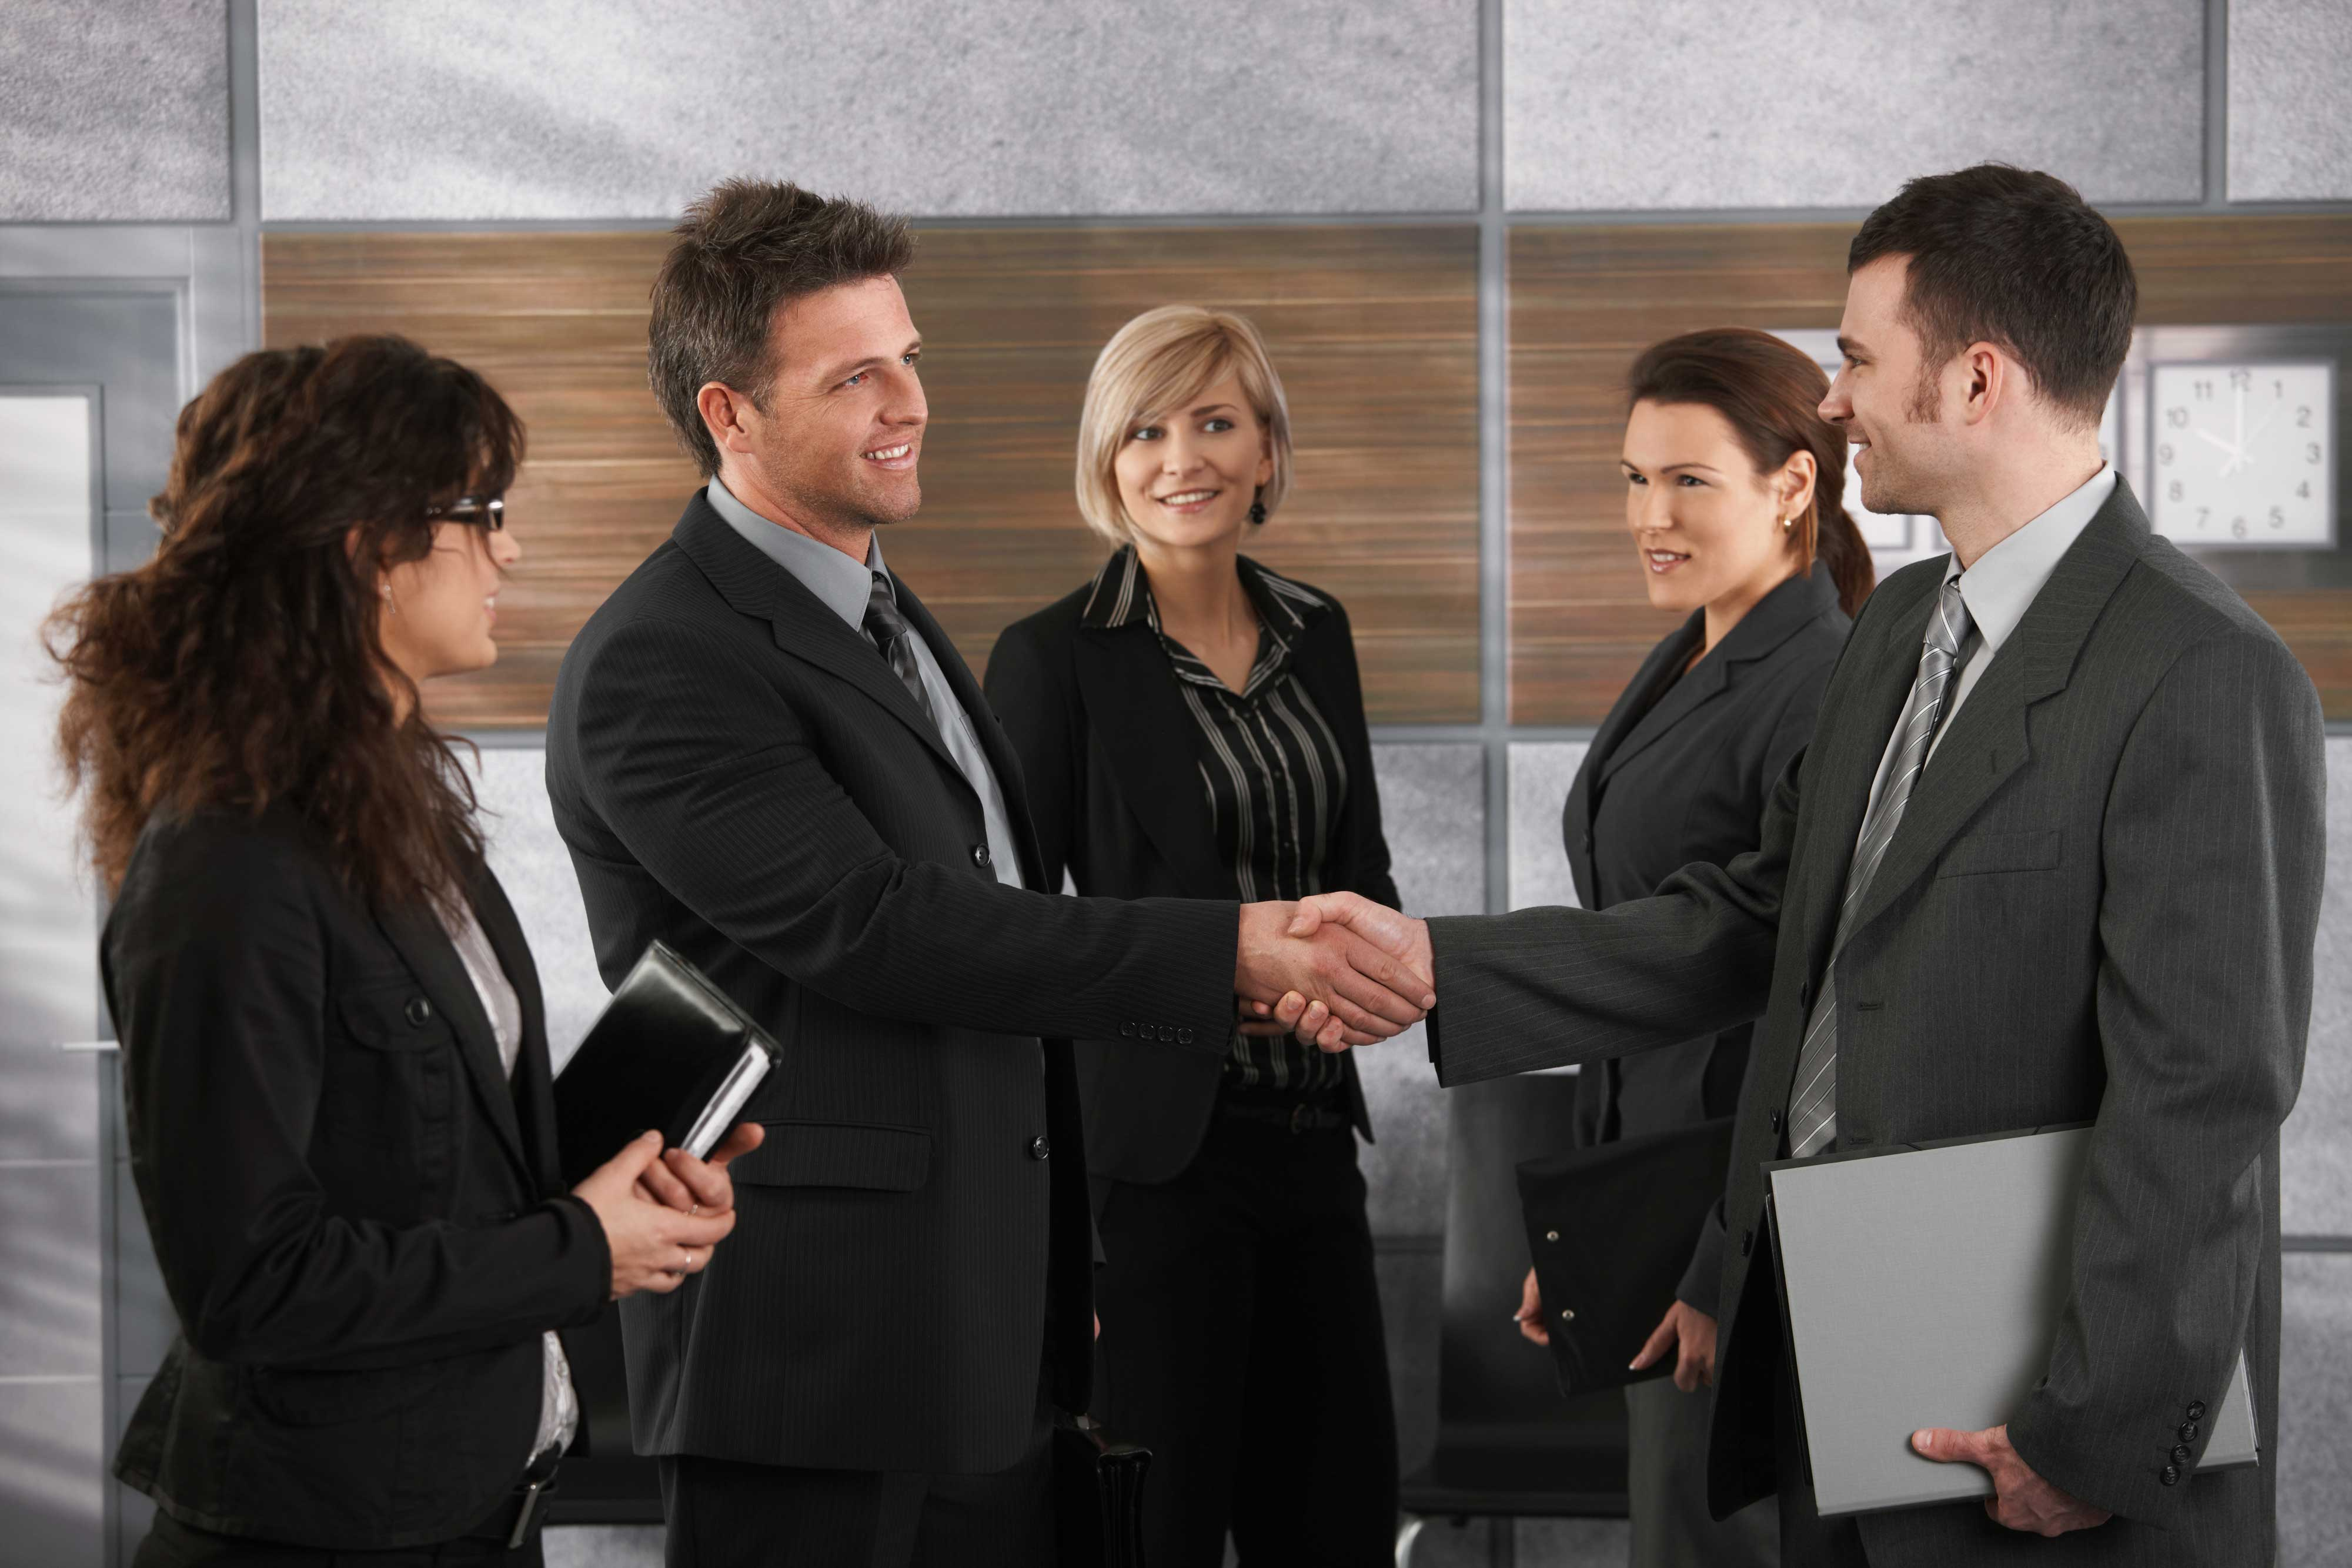 Five business people networking. Two are shaking hands.